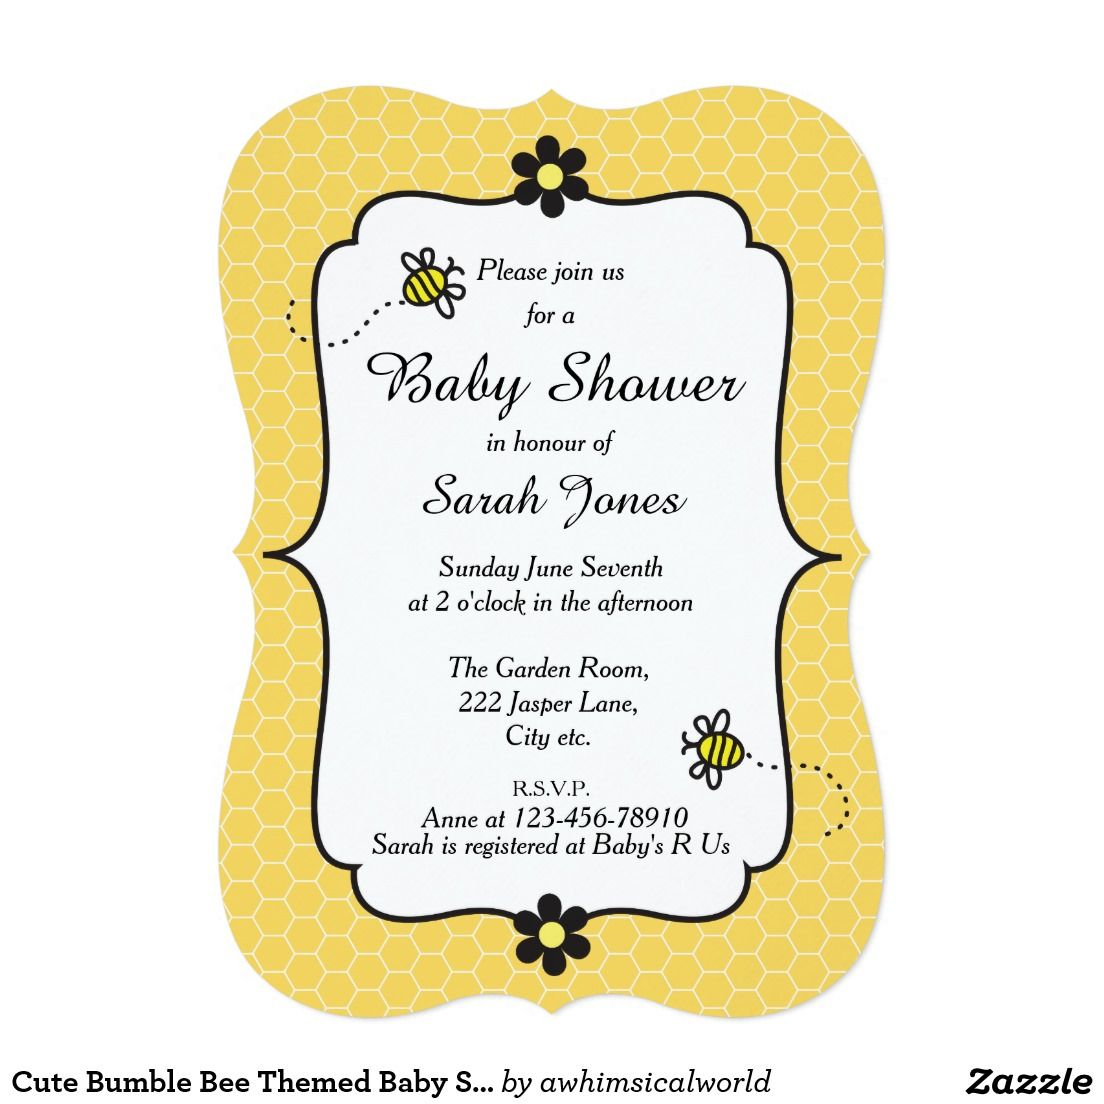 Cute Bumble Bee Themed Baby Shower Invitation #beetheme #babyshower ...